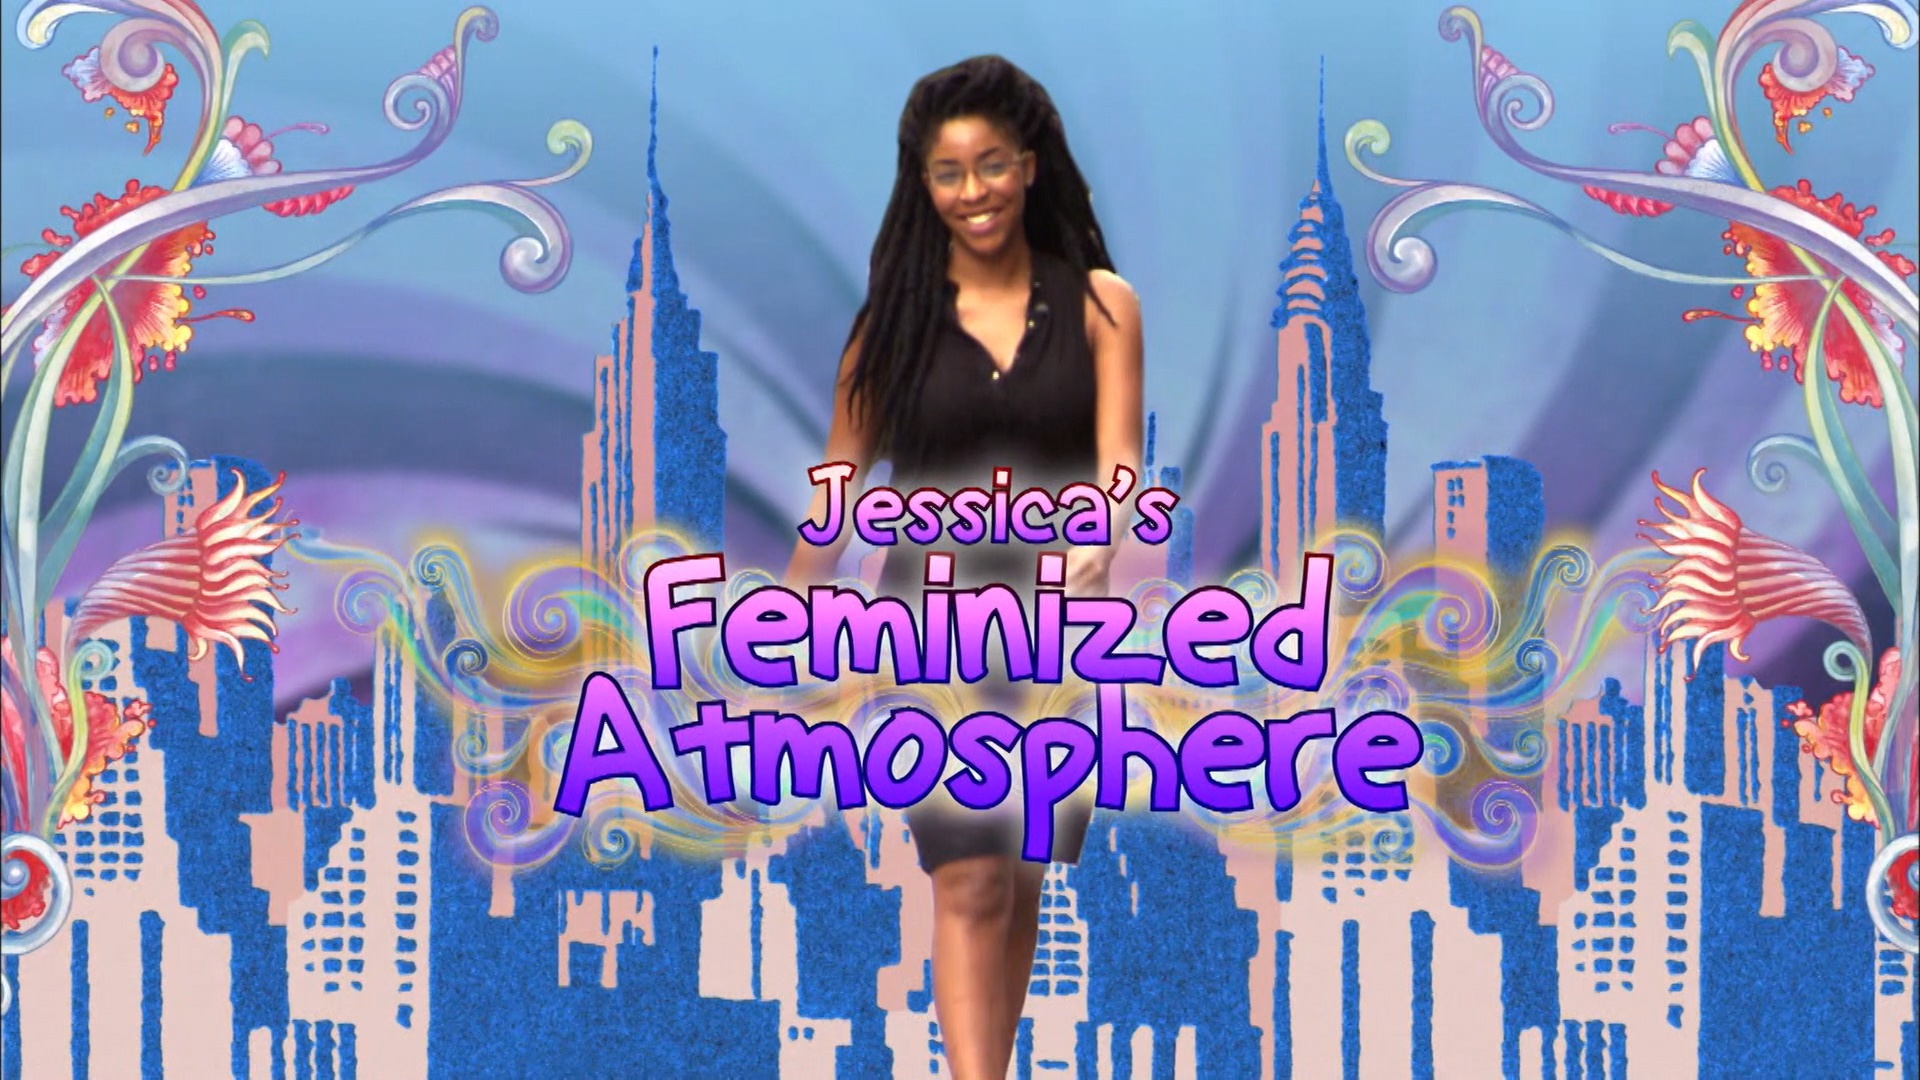 Jessica Williams Calls out Catcallers